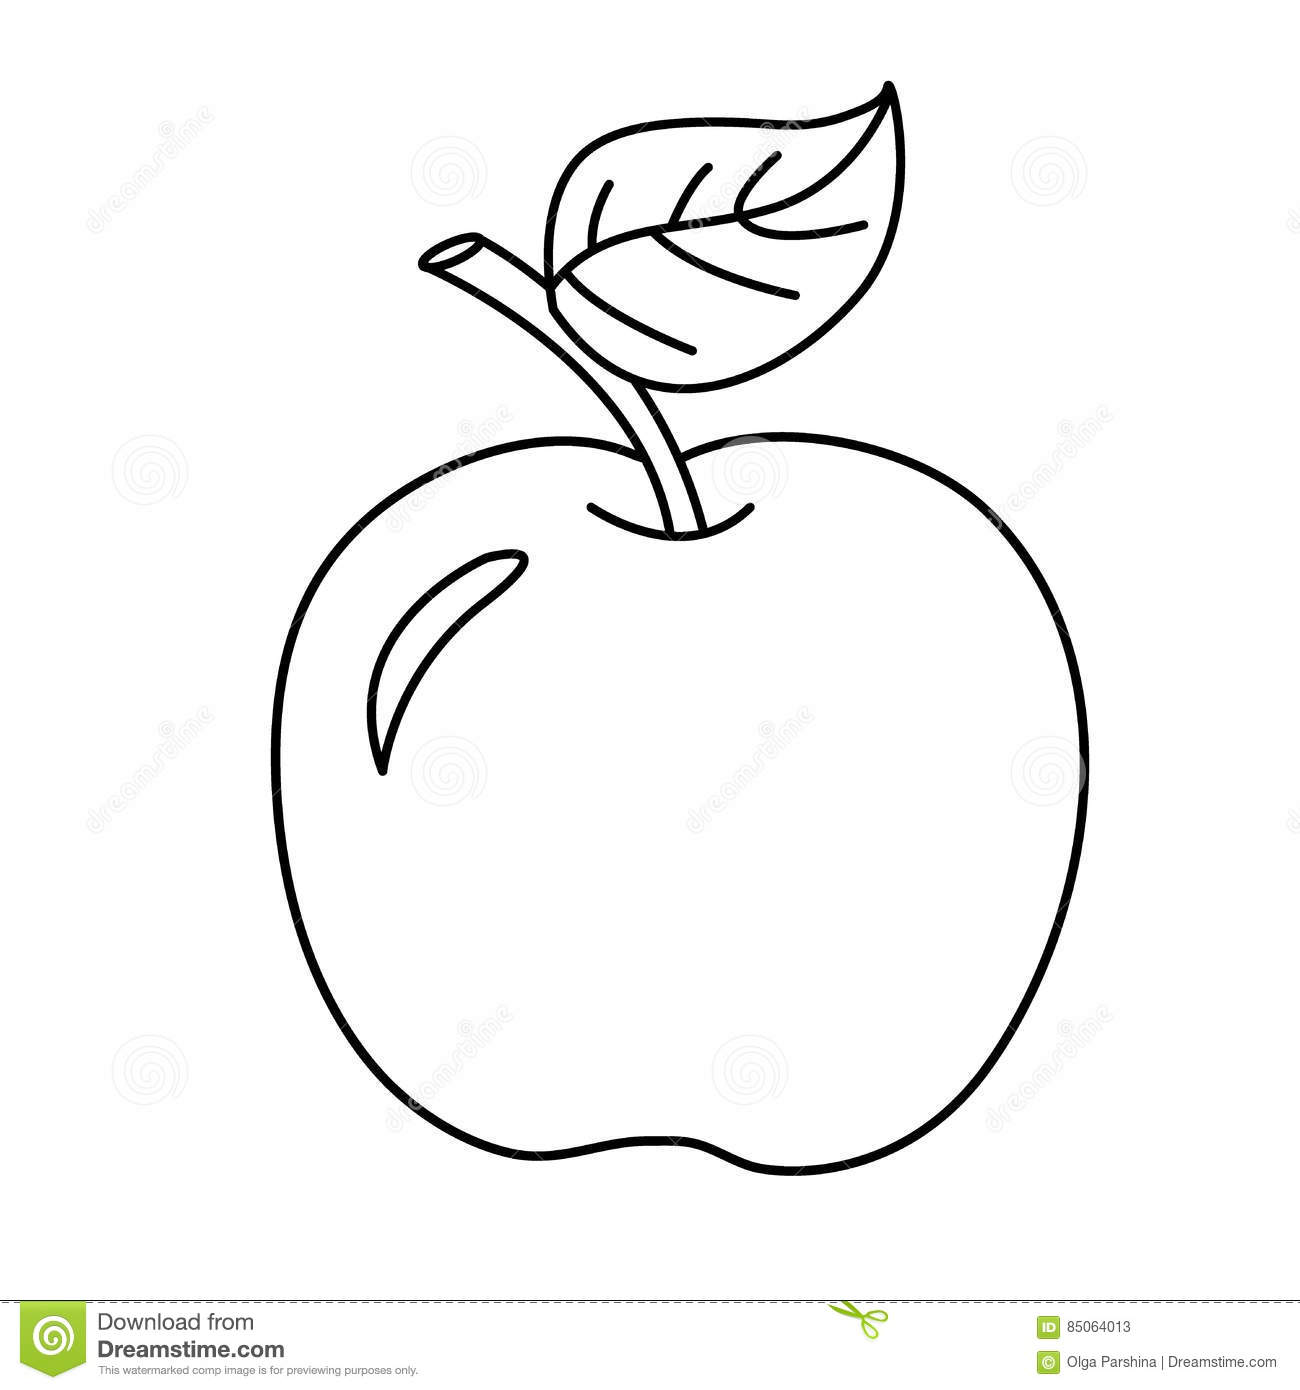 coloring page outline of cartoon apple fruits coloring book